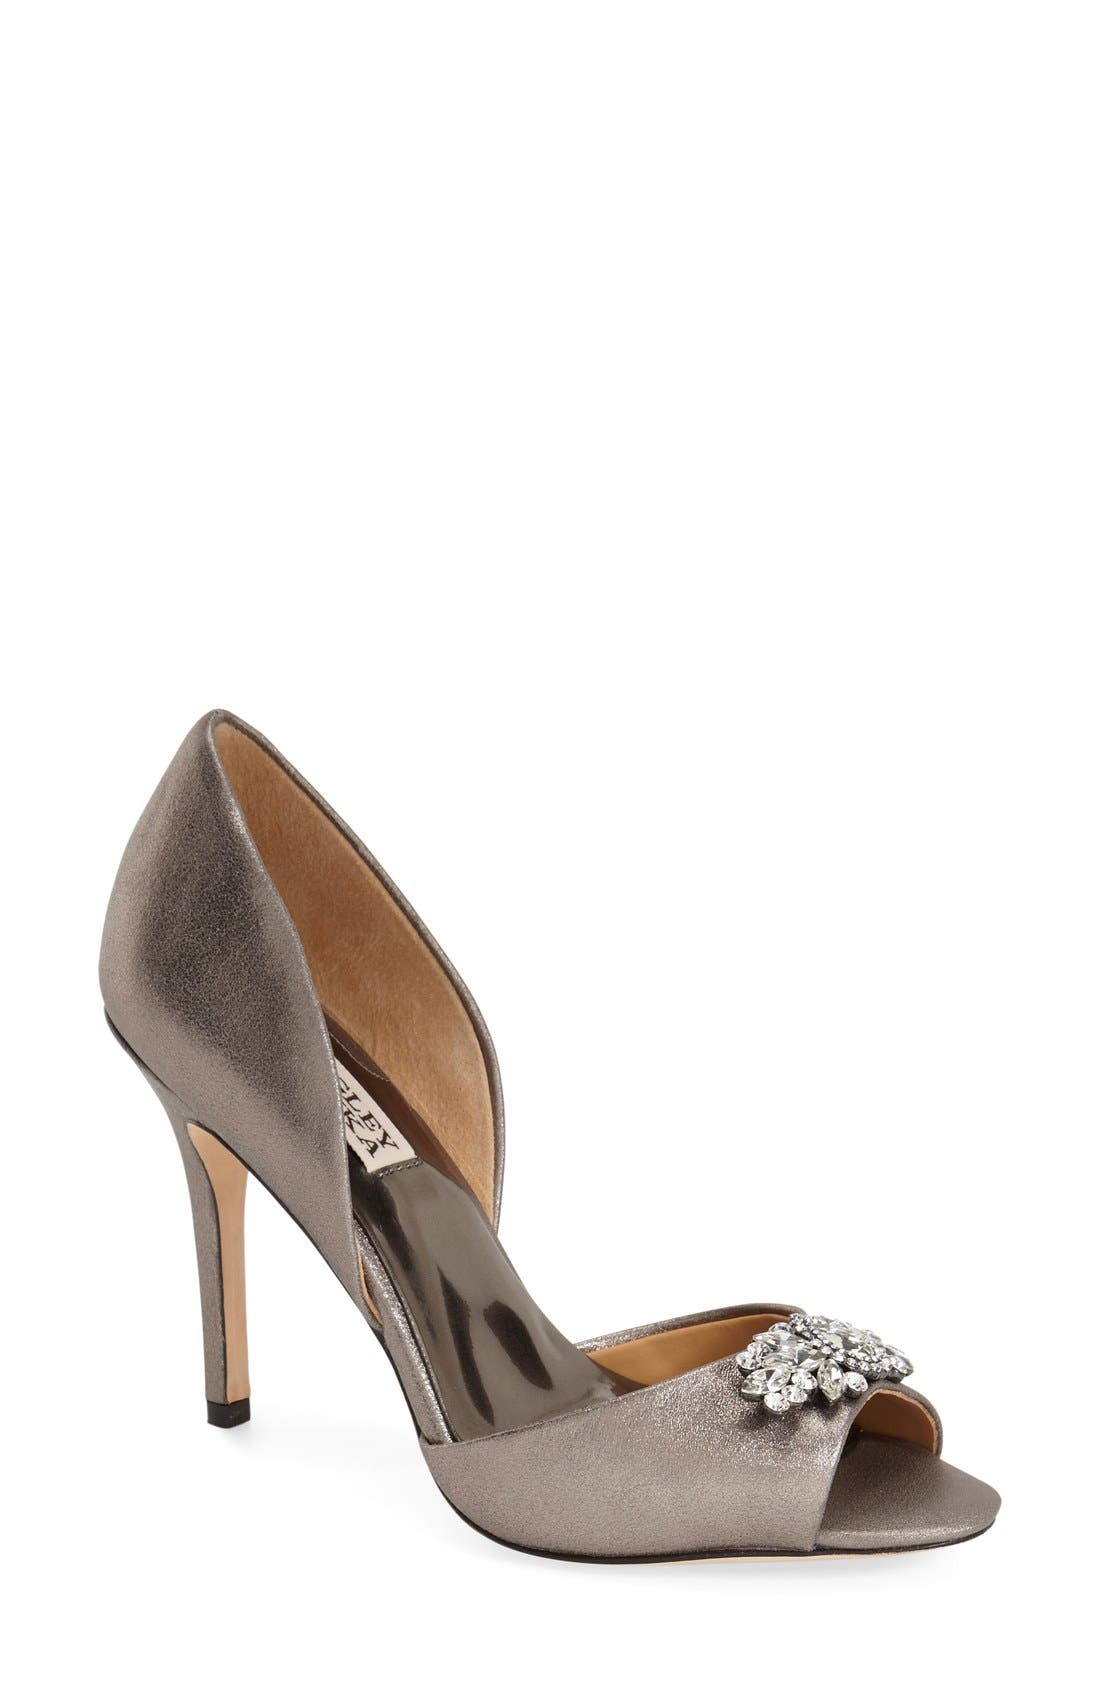 Alternate Image 1 Selected - Badgley Mischka 'Sugar' d'Orsay Pump (Women)